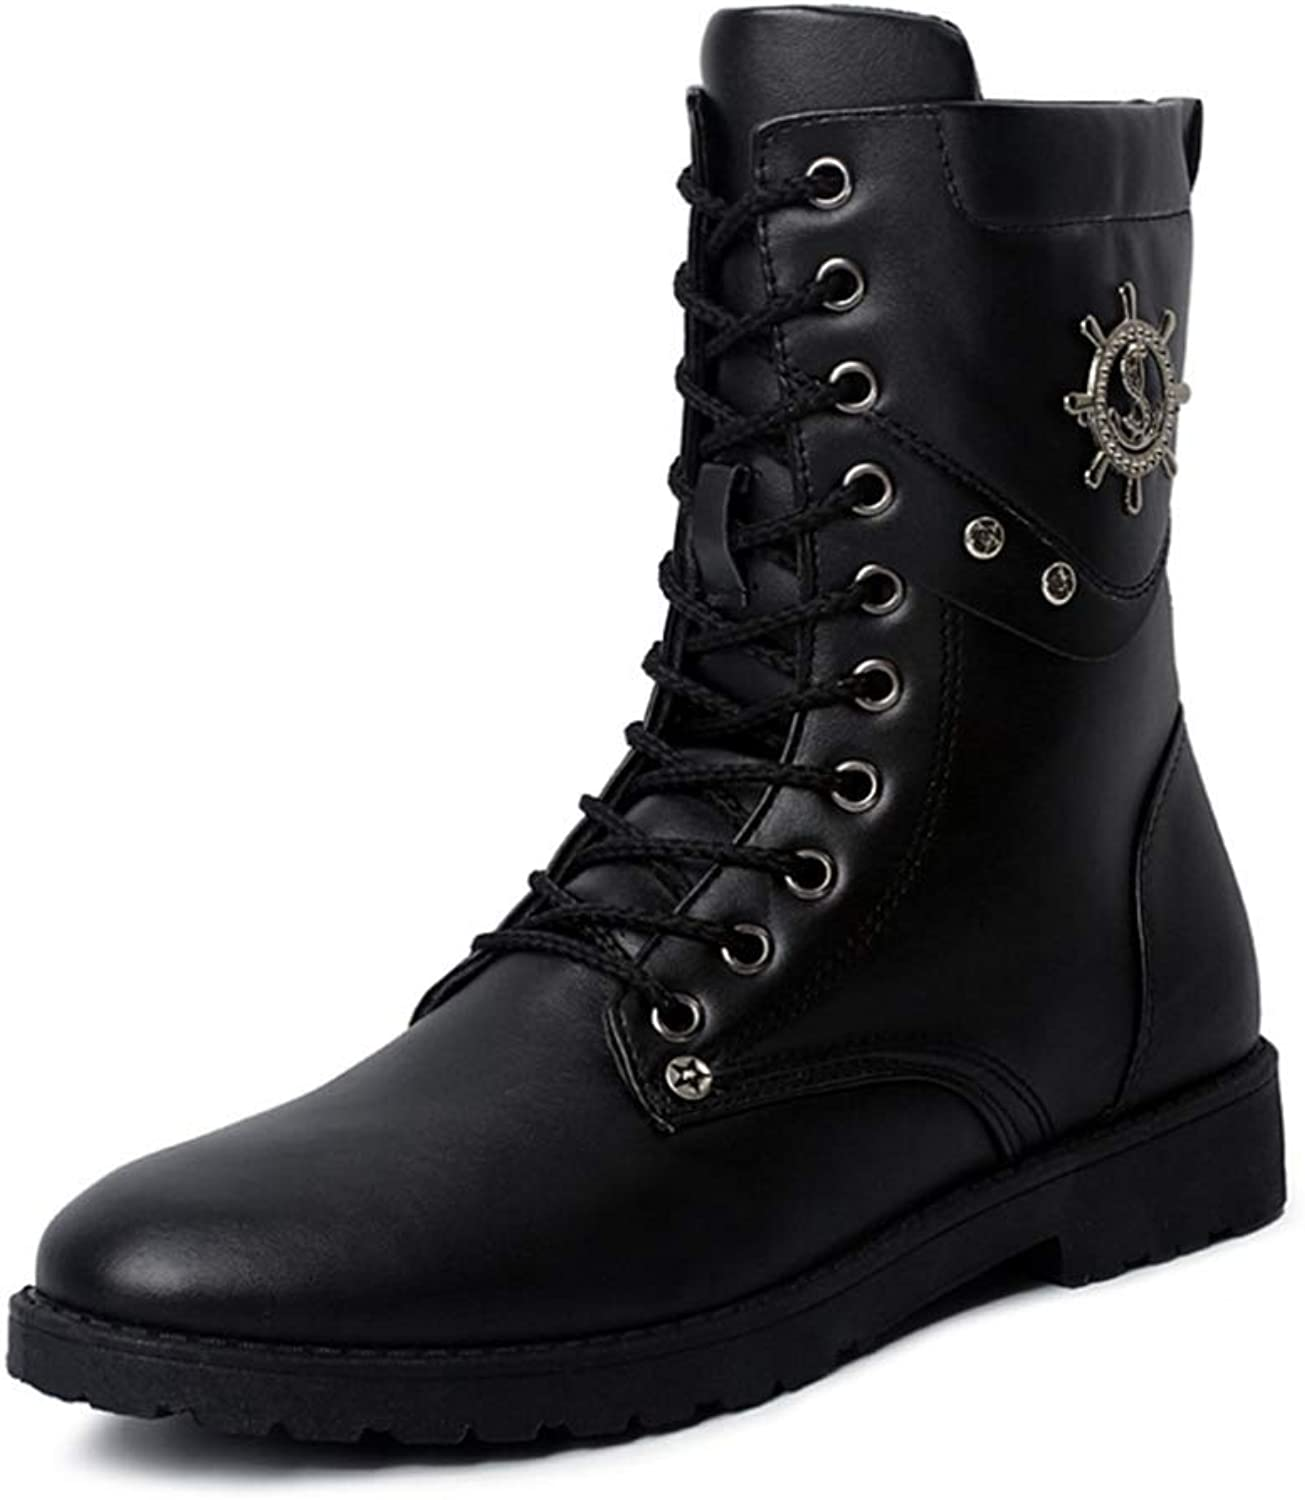 Men'S Martin Boots High Boots Combat Boots Black Leather Buckle Ankle Boots Punk Rock Combat Boots Military Boots Chelsea Boots